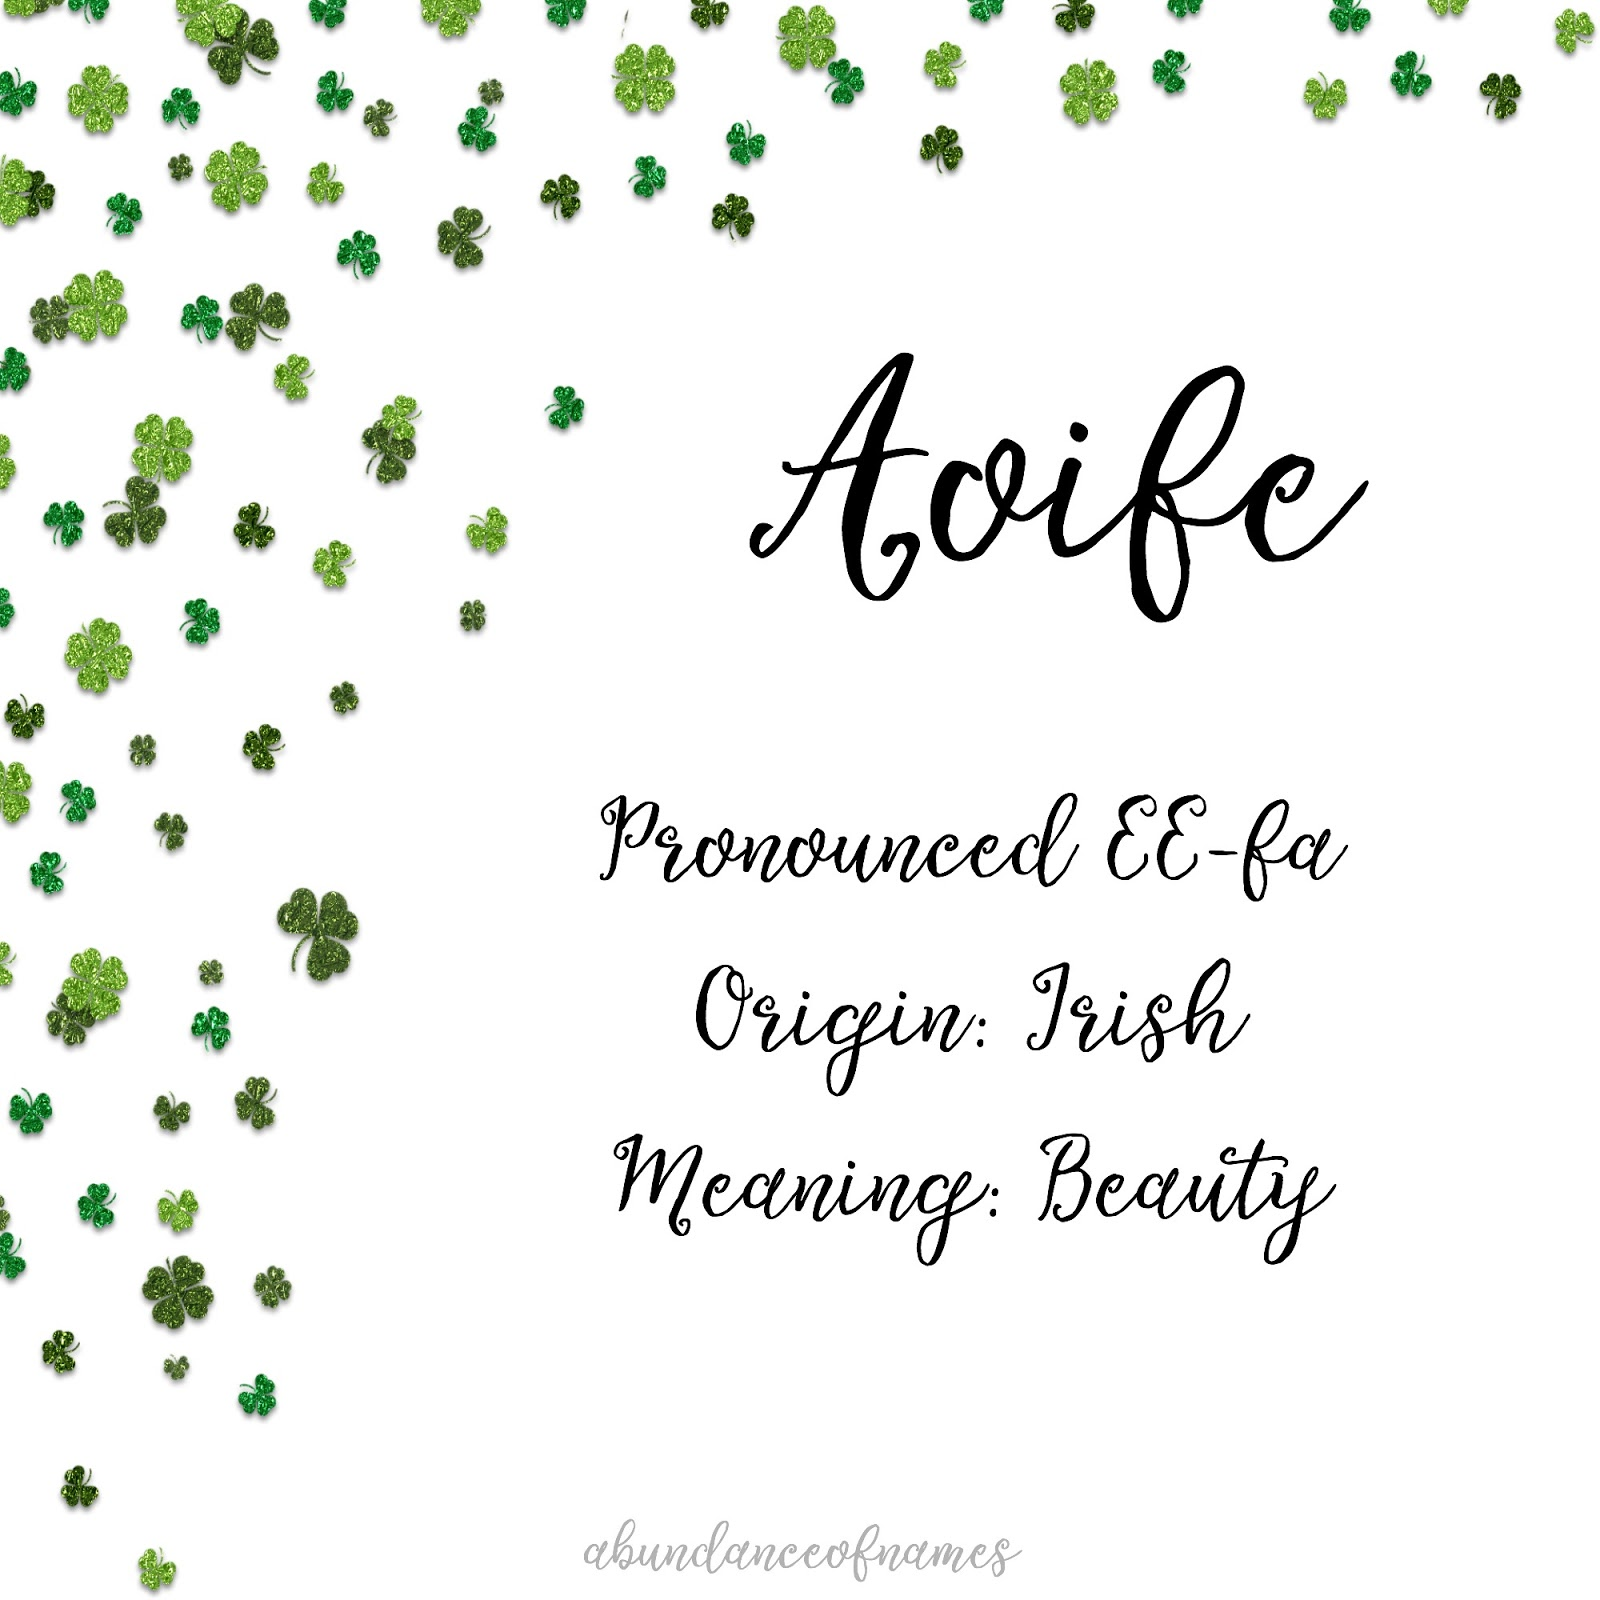 They Can Be Hard To Pronounce But Are Just Beautiful With St Patricks Day Right I Thought It Would Only Fitting Look At Some Irish Names